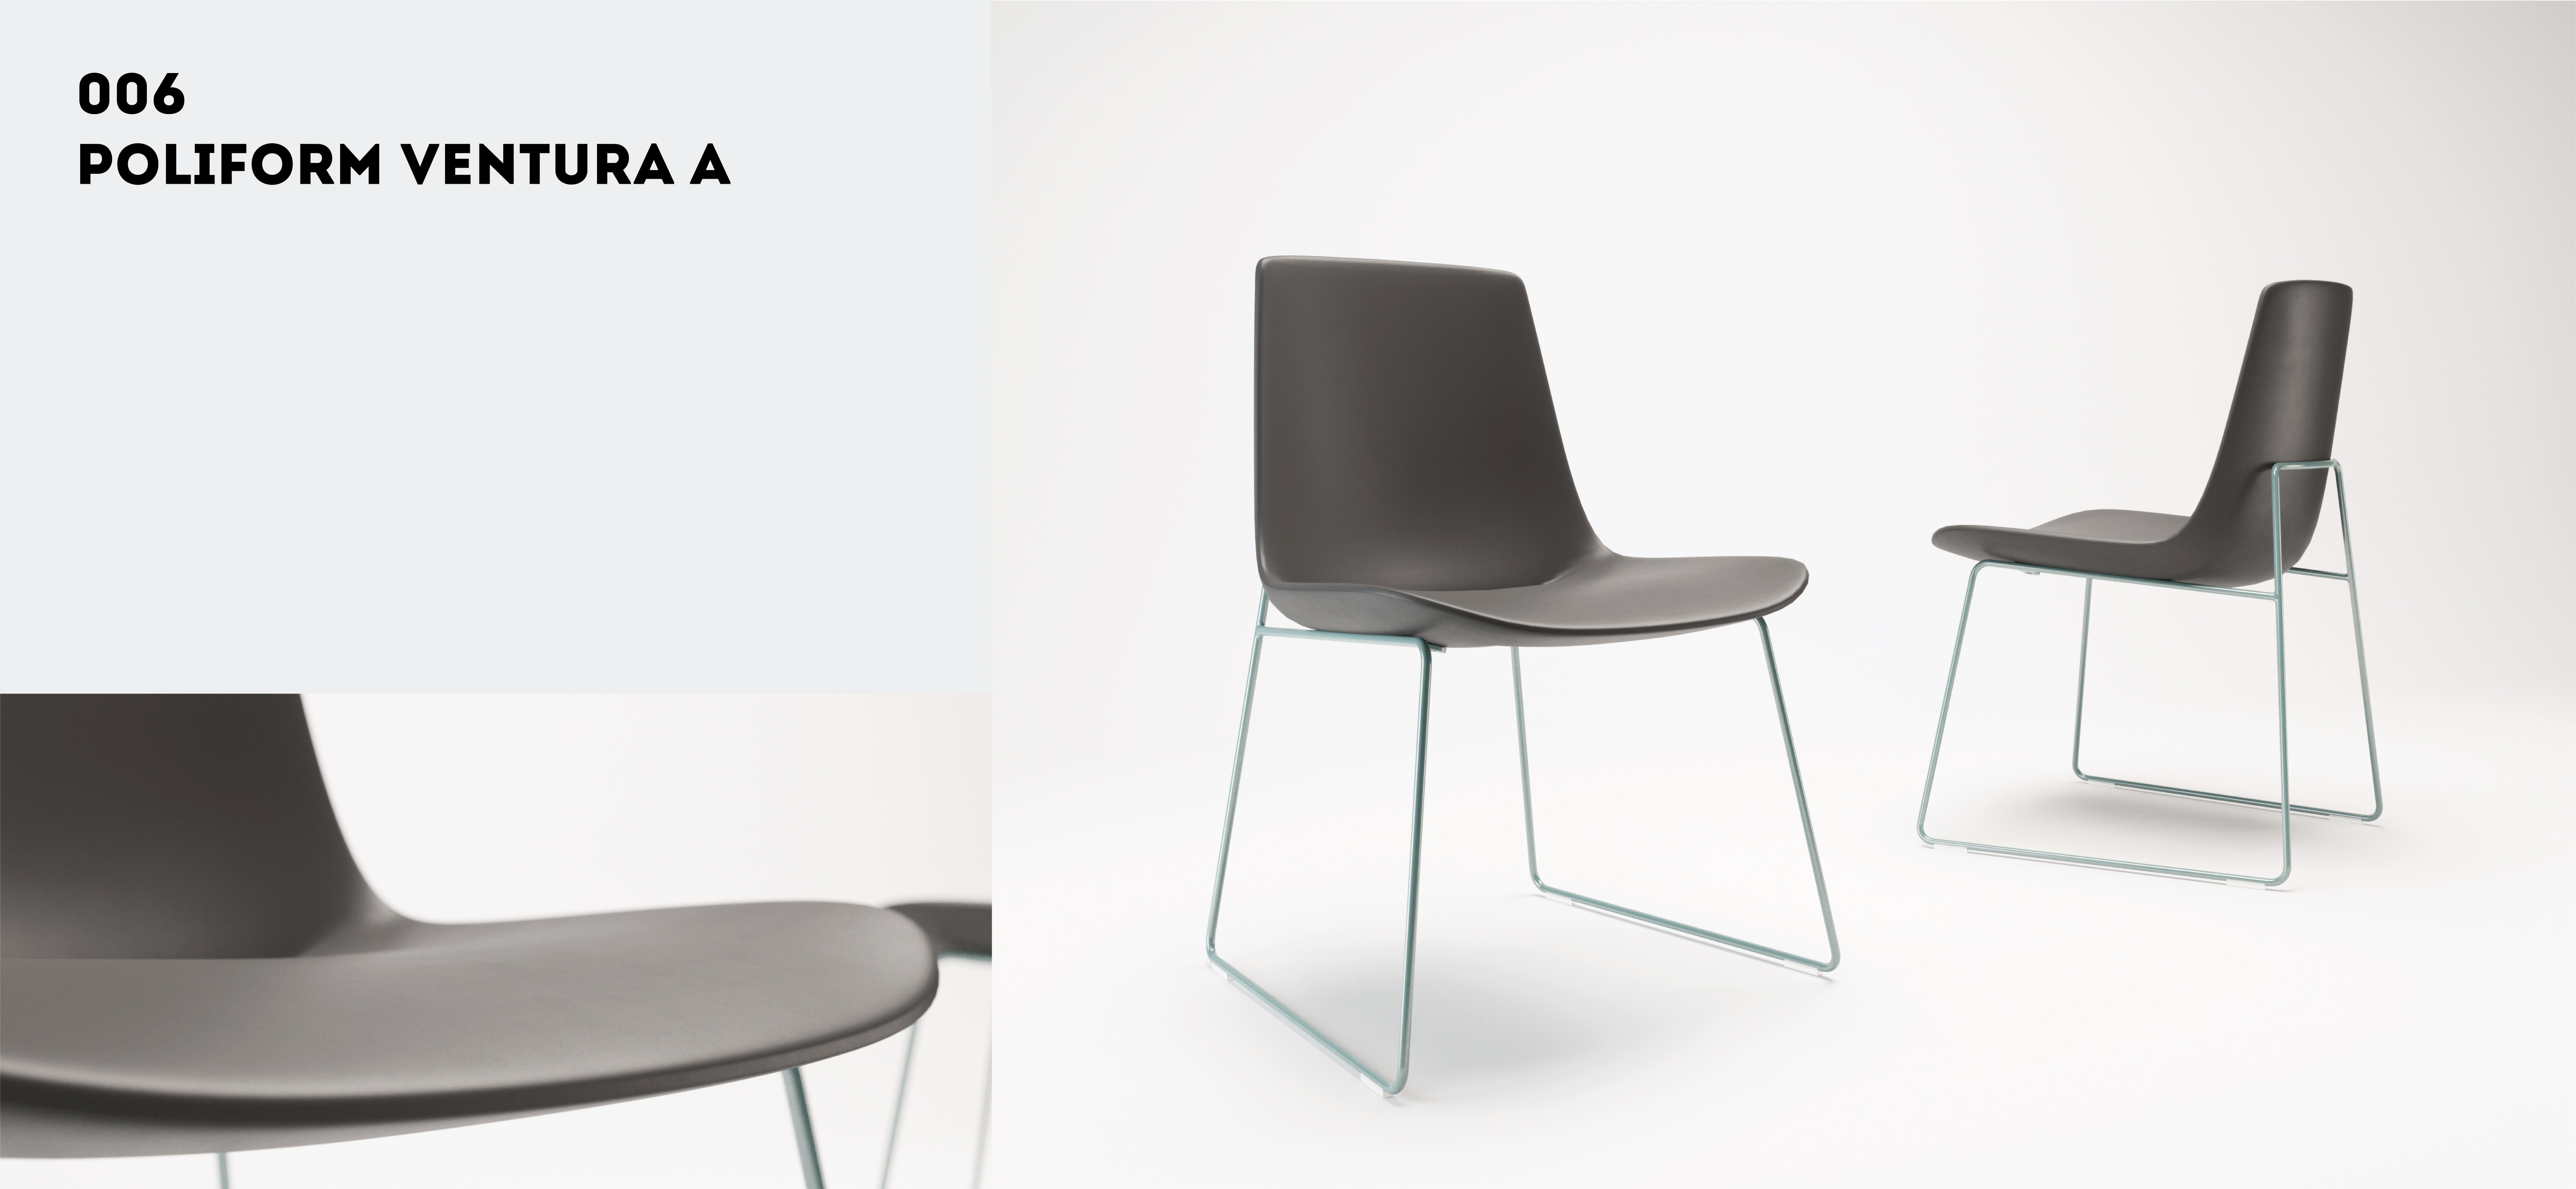 Home products chairs ics ipsilon - Attached Thumbnails